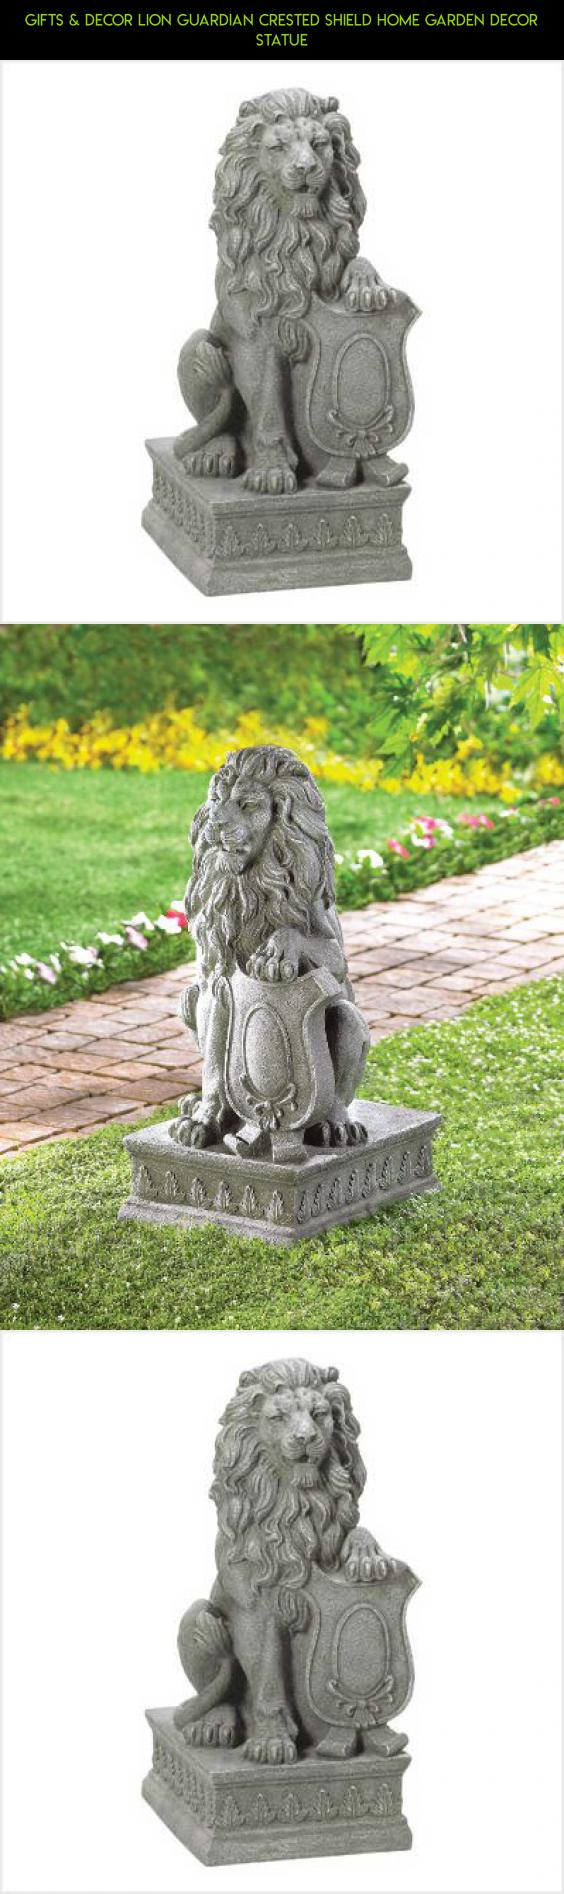 Gifts & Decor Lion Guardian Crested Shield Home Garden Decor Statue ...